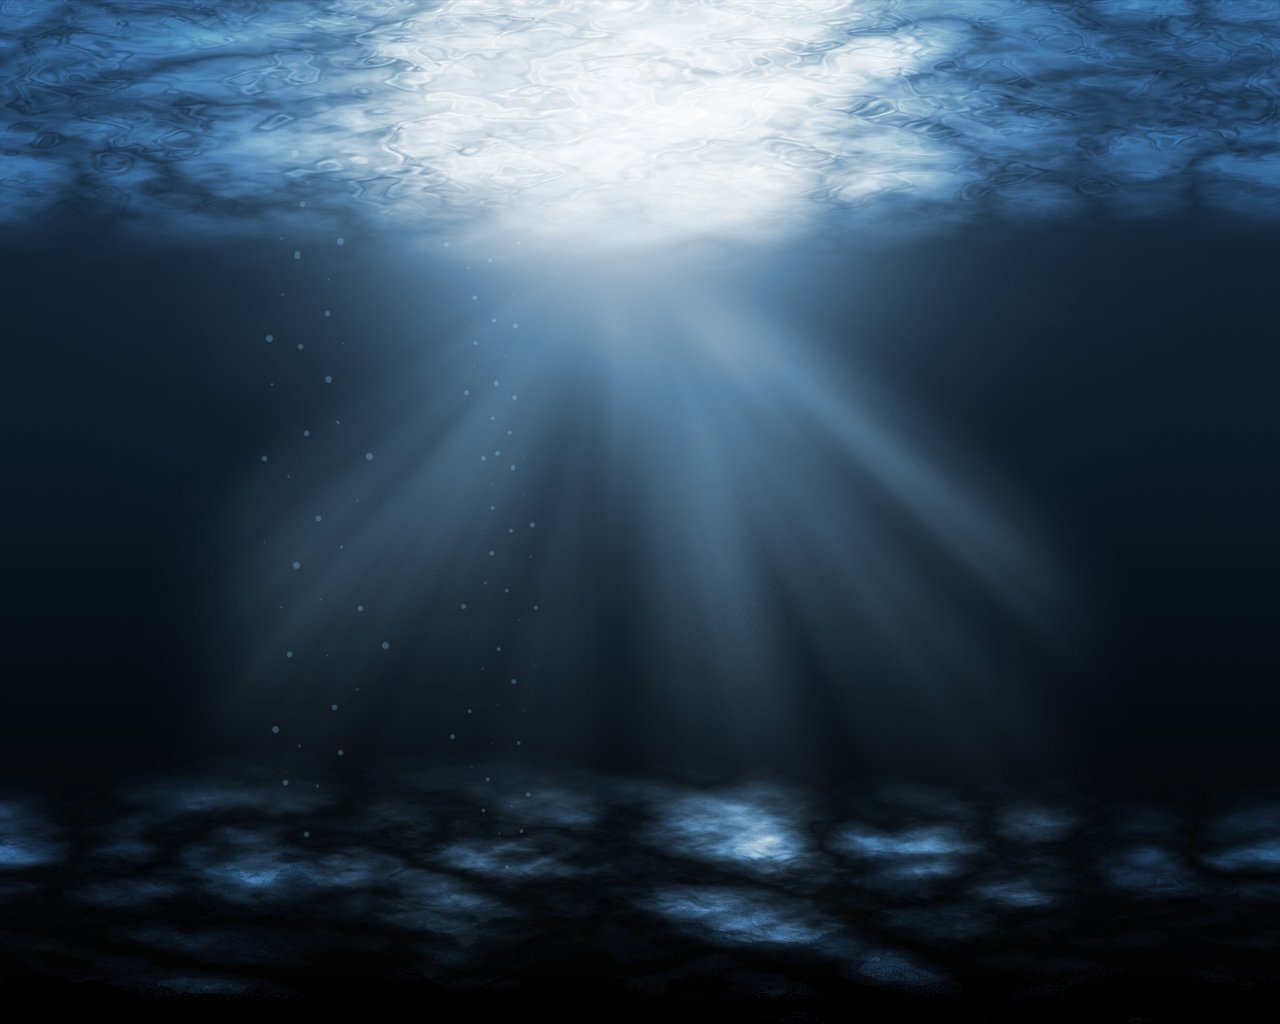 under dark ocean with light shining through